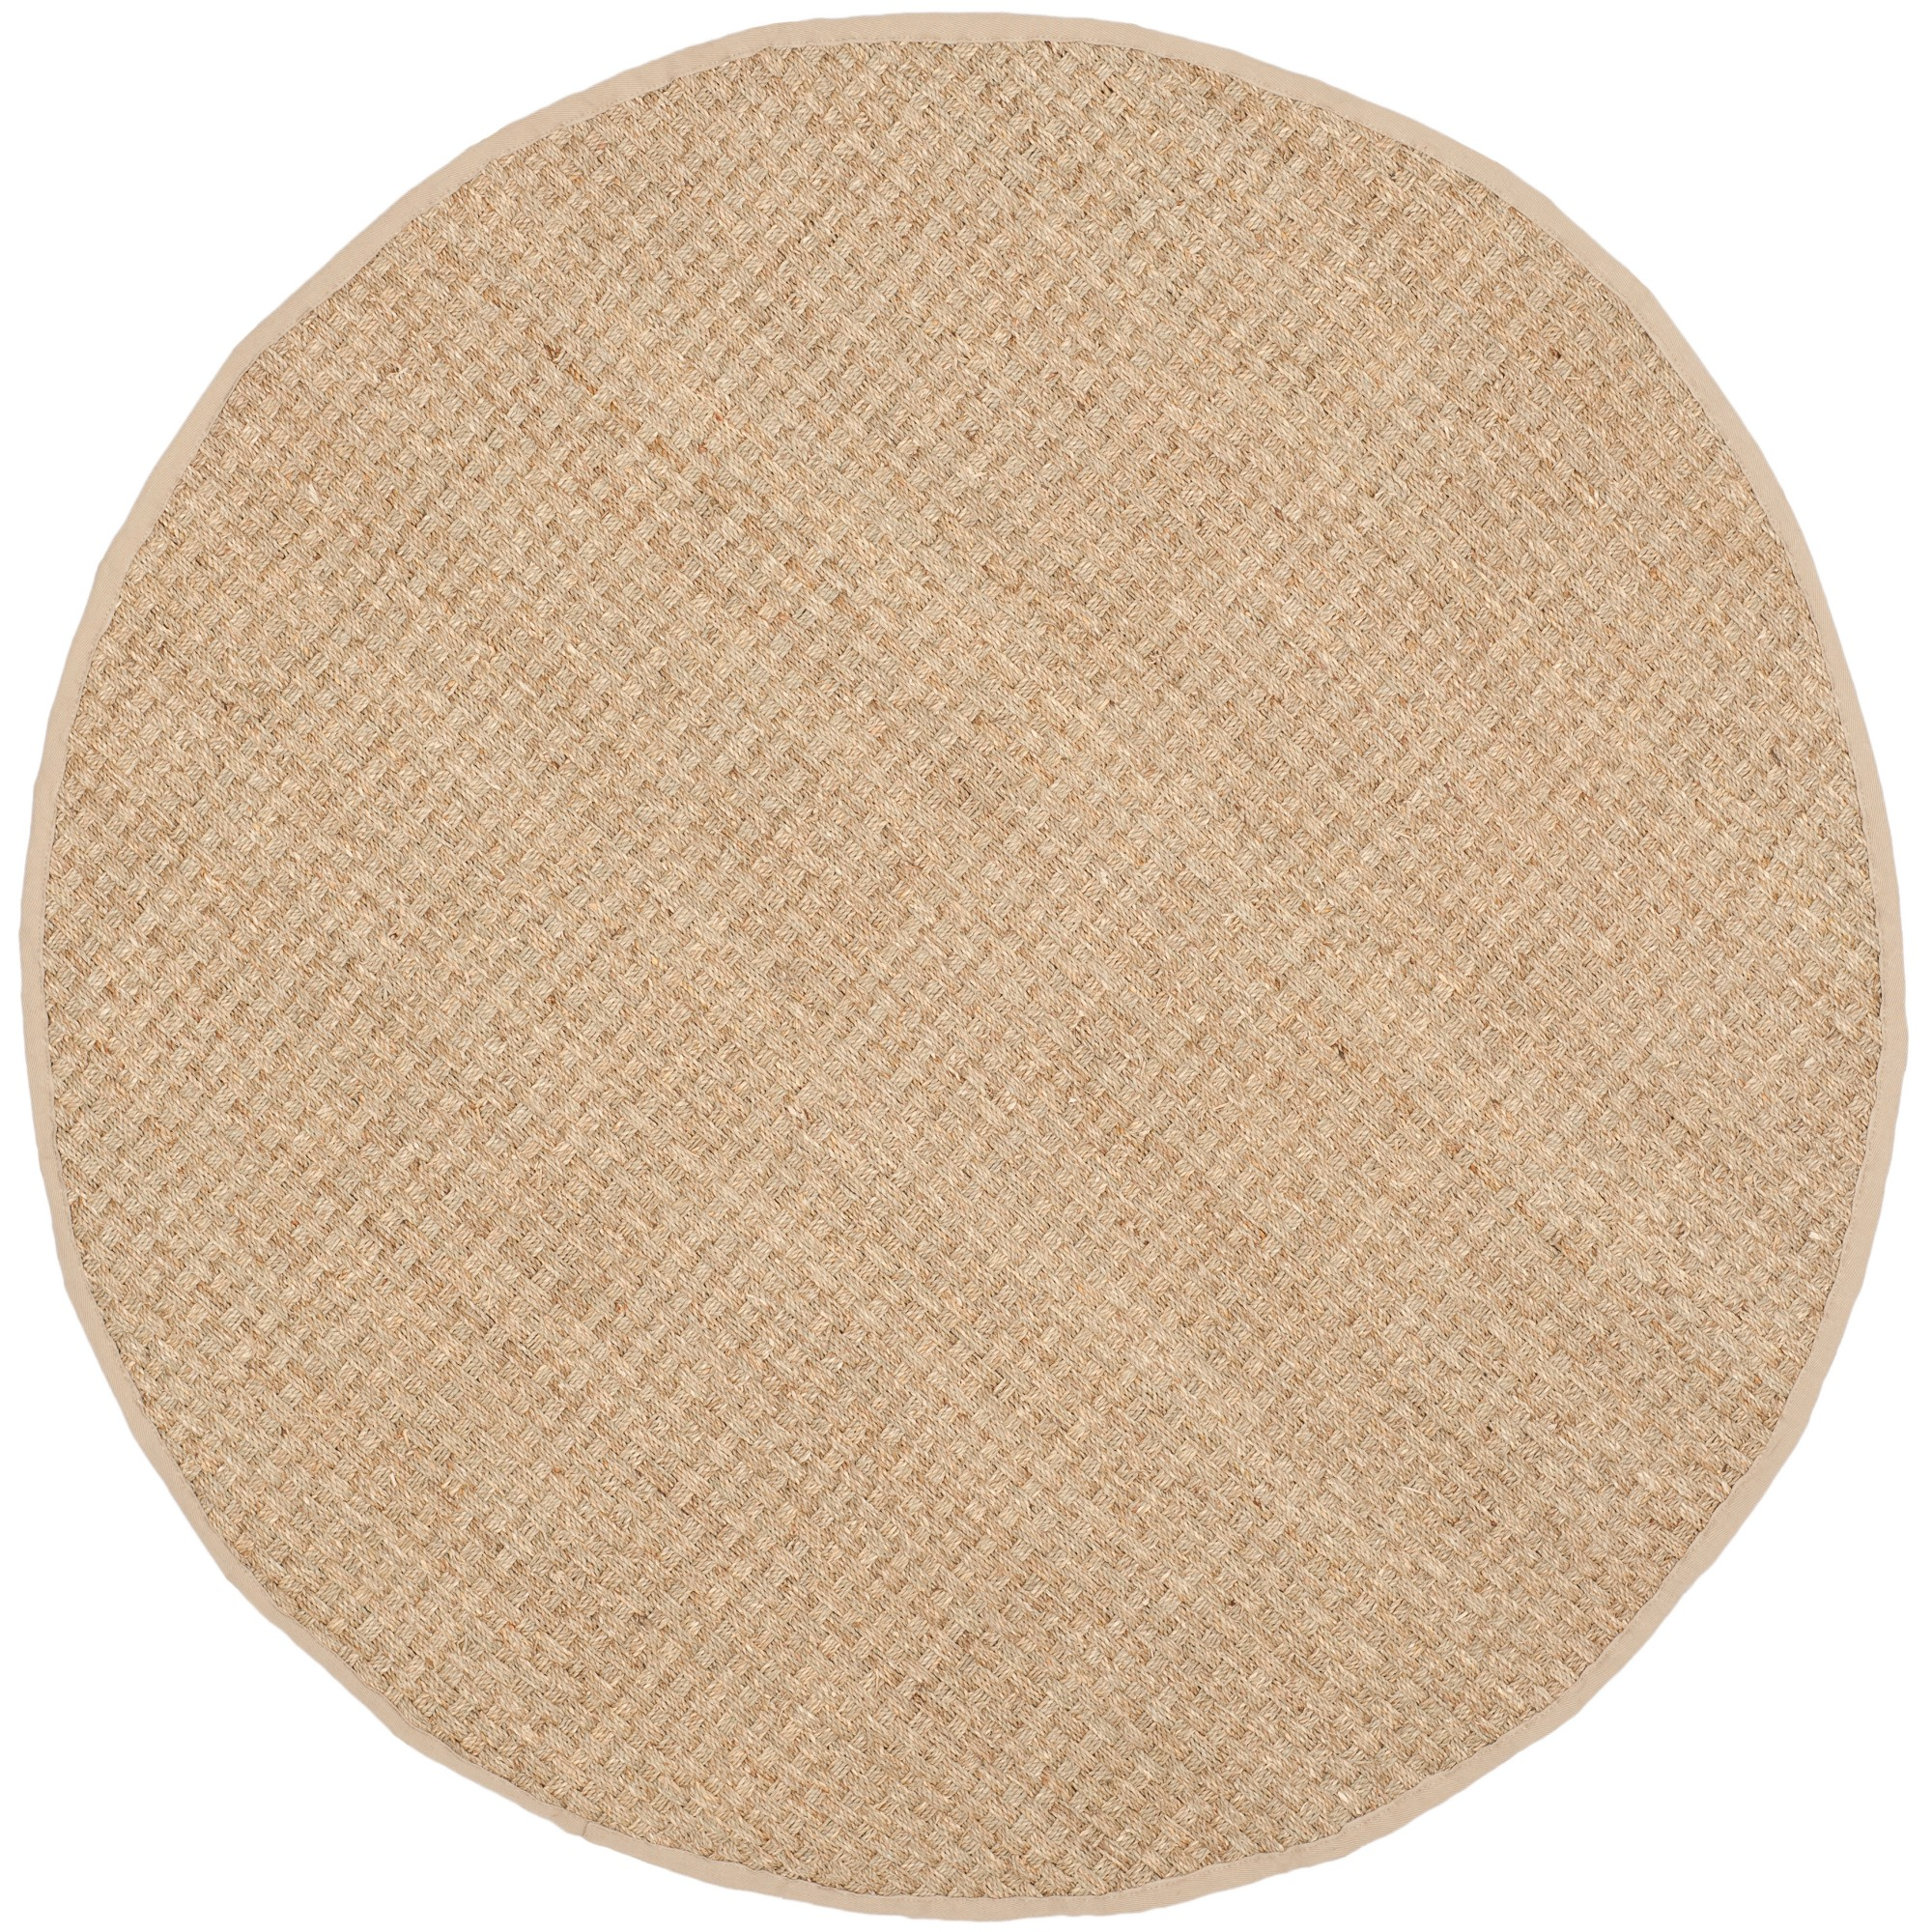 9' Solid Loomed Round Area Rug Natural/Beige - Safavieh